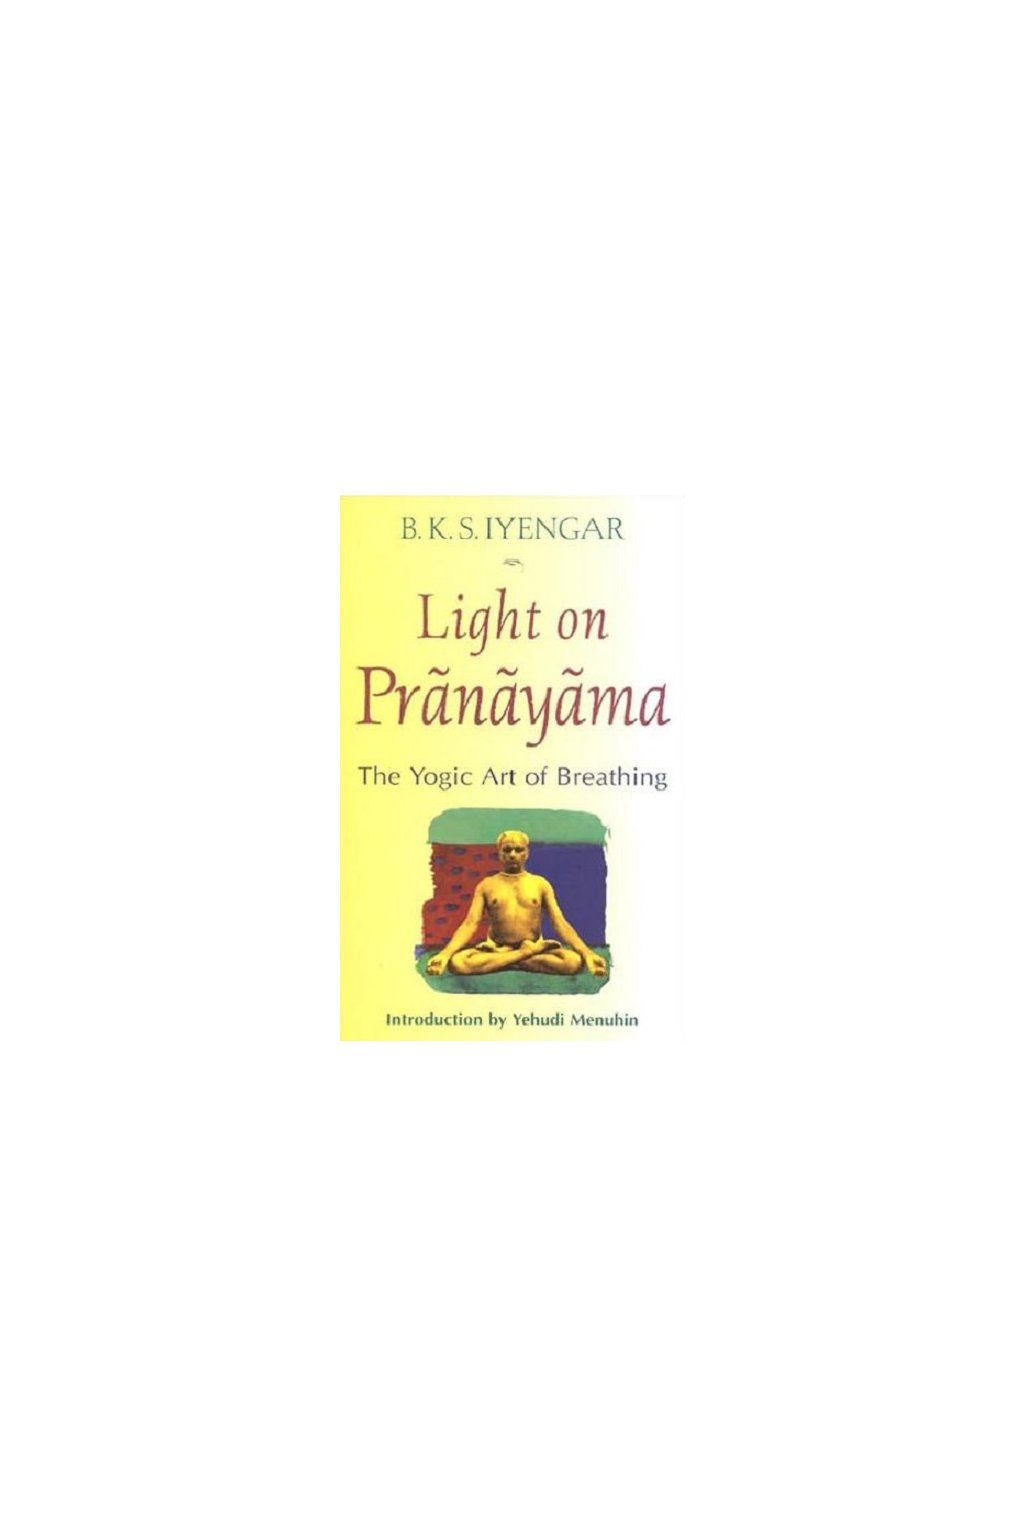 Light_of_pranayama